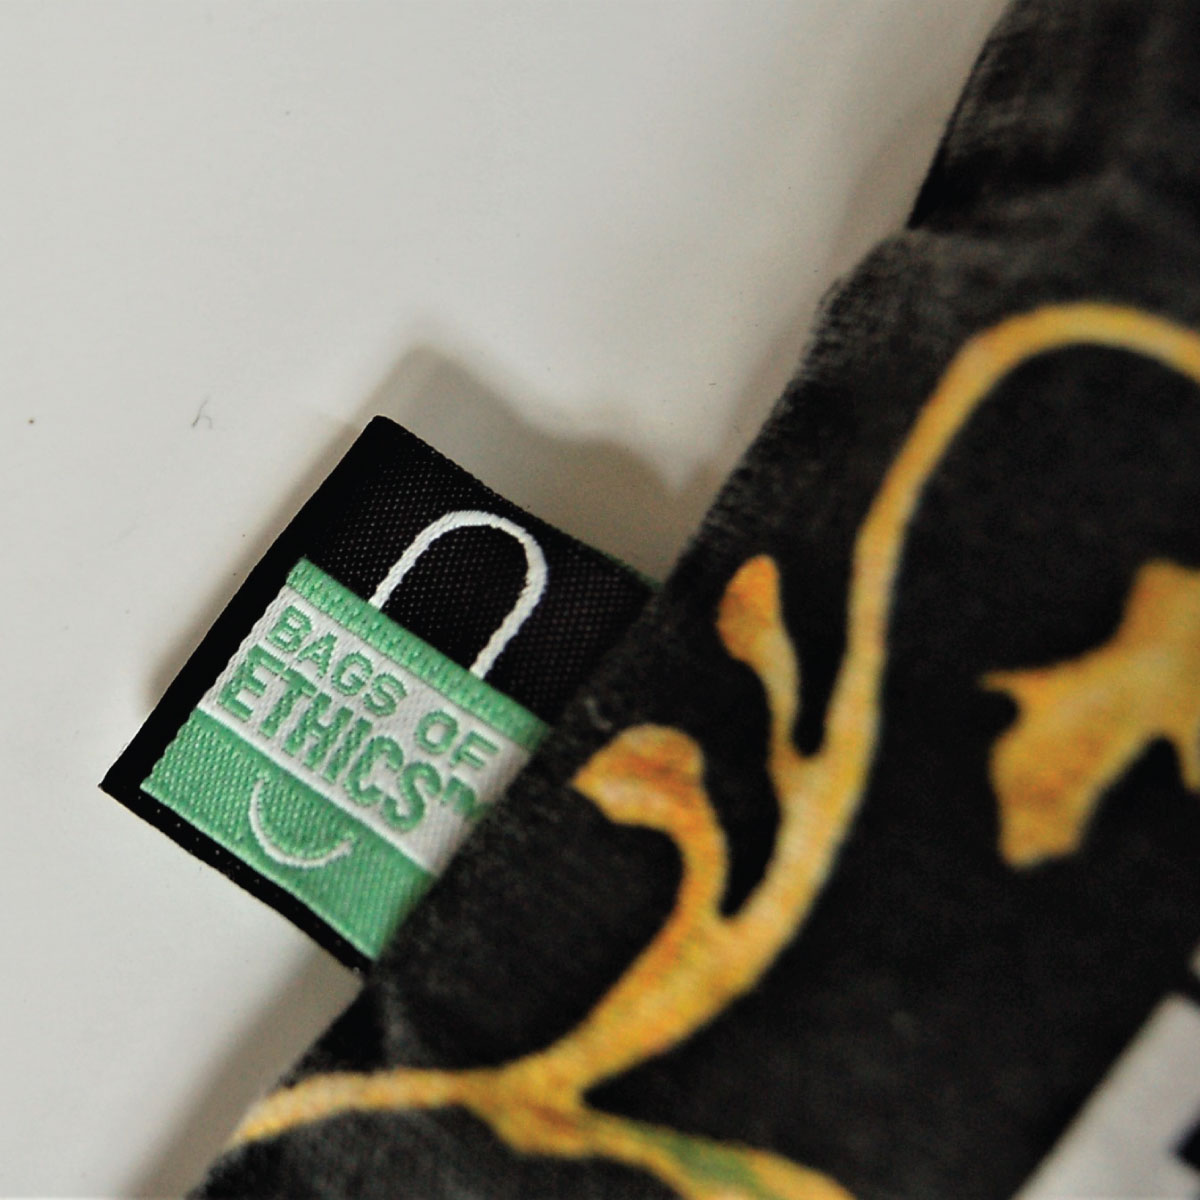 bags of ethics label